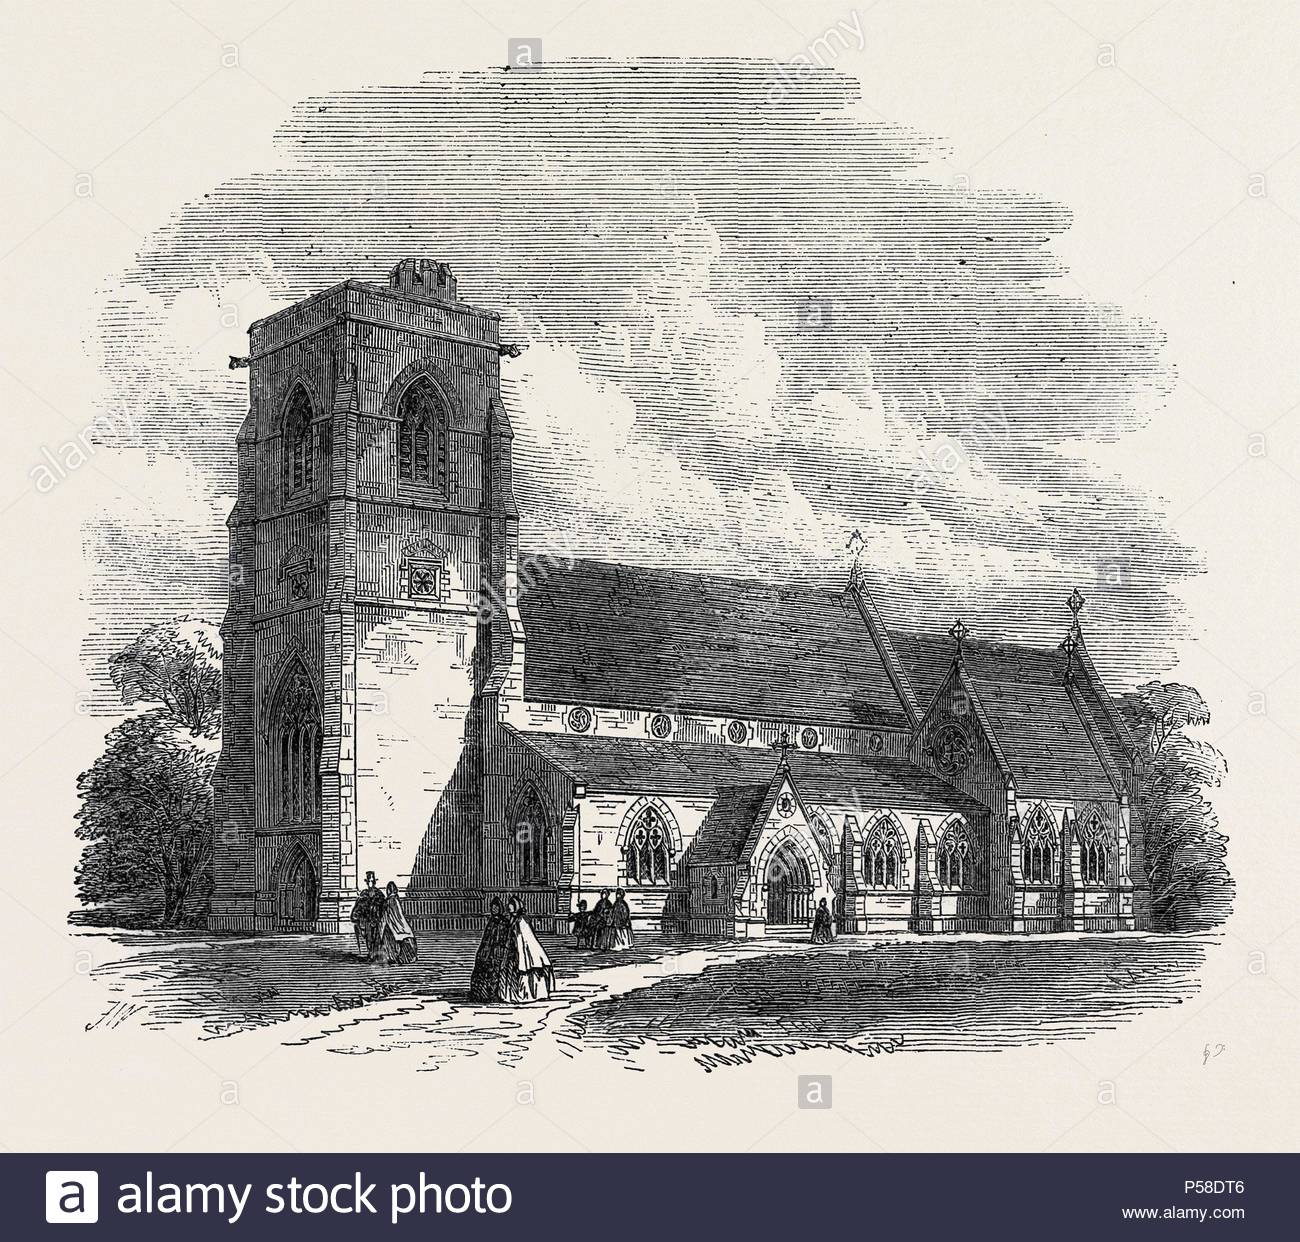 BENHILTON CHURCH, SUTTON, SURREY, UK, 1866. - Stock Image